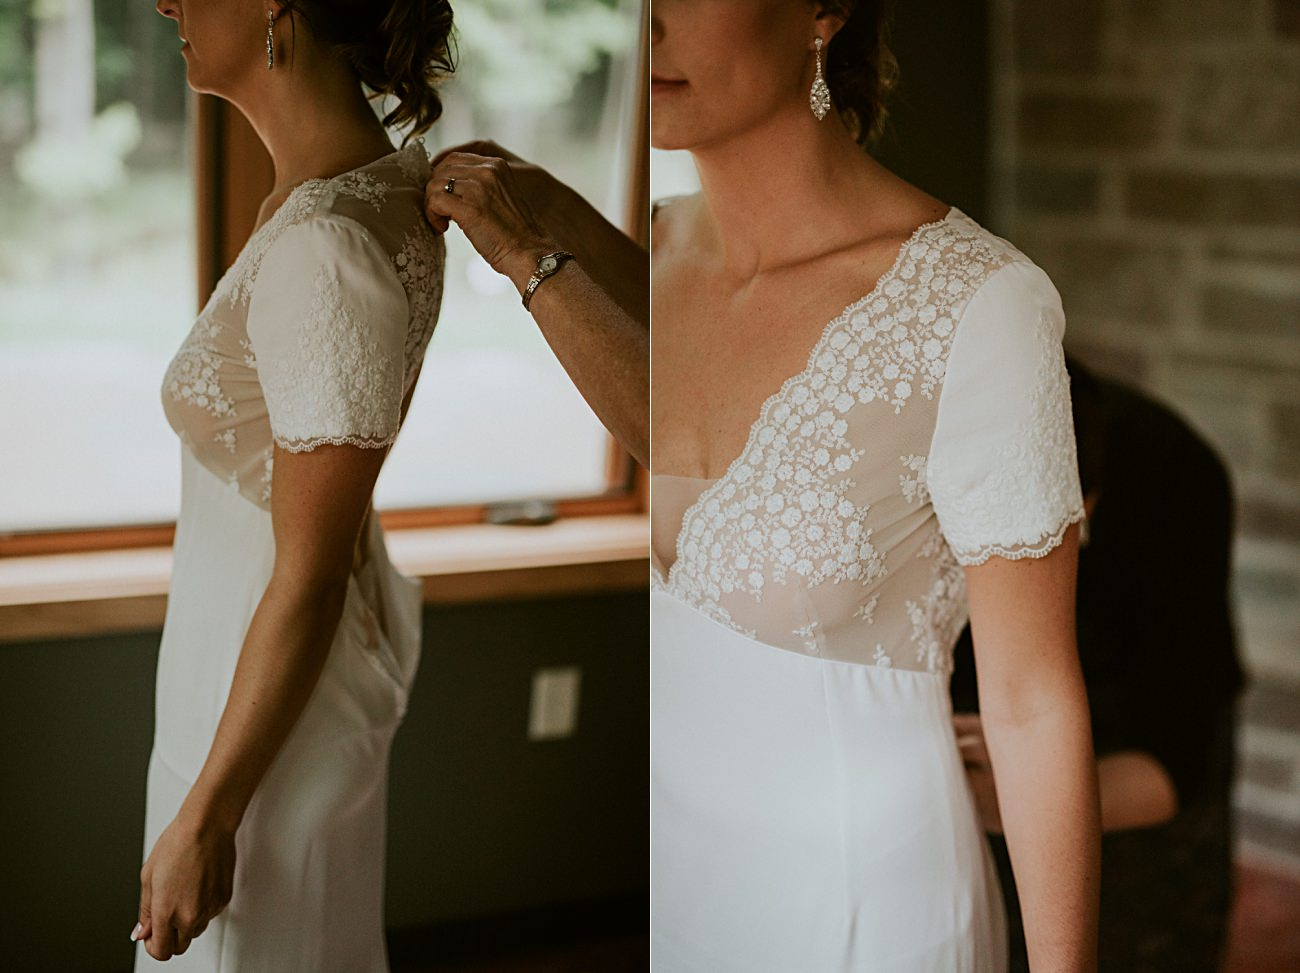 Bride getting ready, Rib Mountain Wedding in Wausau Wisconsin - Mountaintop Wedding, Wisconsin Wedding - Natural Intuition Photography